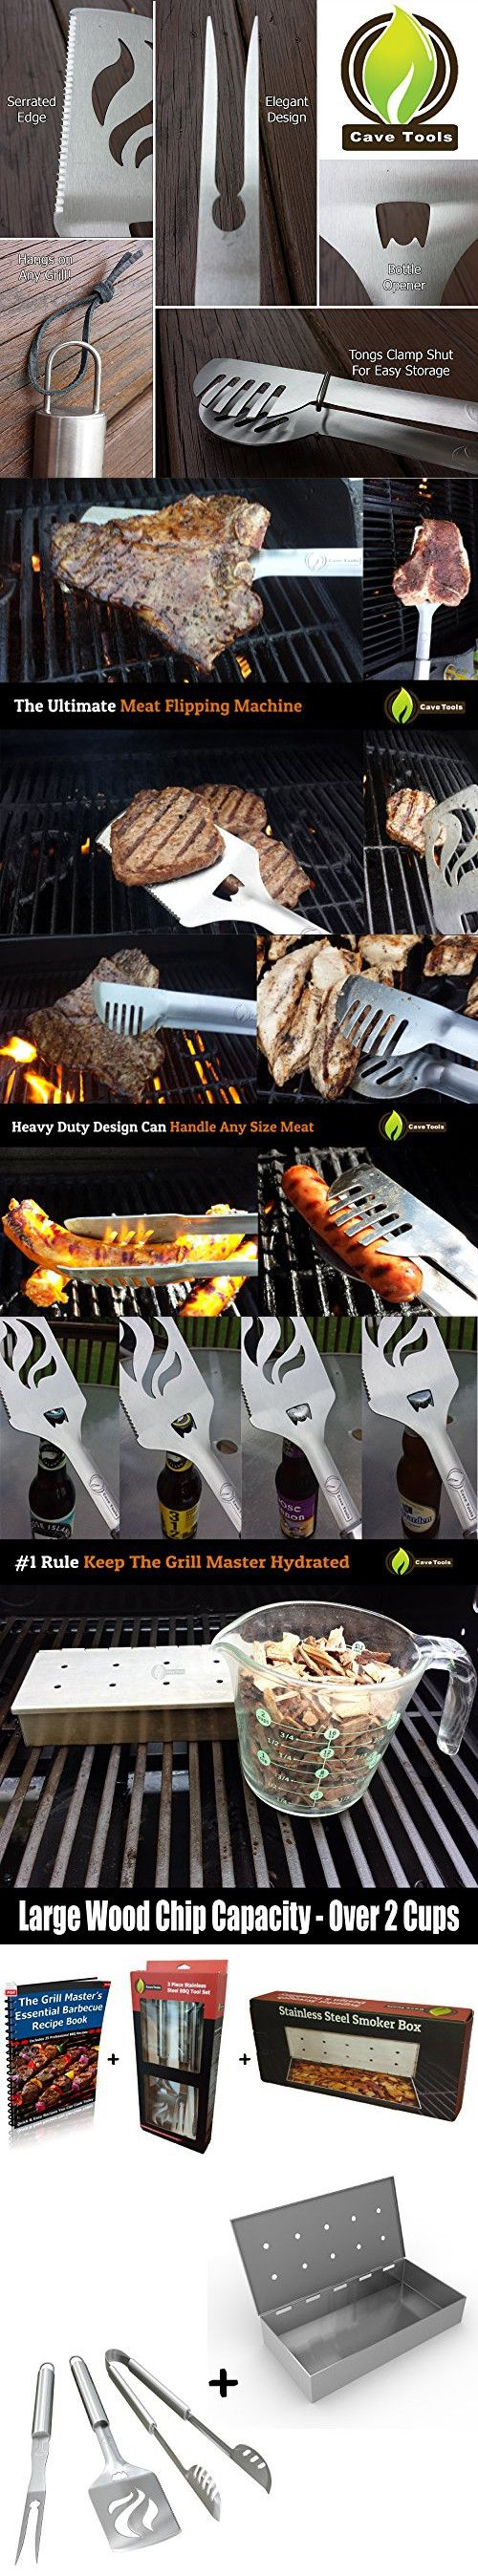 Smoker Box + BBQ Grill Tools Set - HEAVY DUTY 20% THICKER STAINLESS STEEL - Professional Barbecue Accessories - 3 Piece Utensils Kit Includes Spatula Tongs & Fork - Unique Birthday Gift Idea For Dad